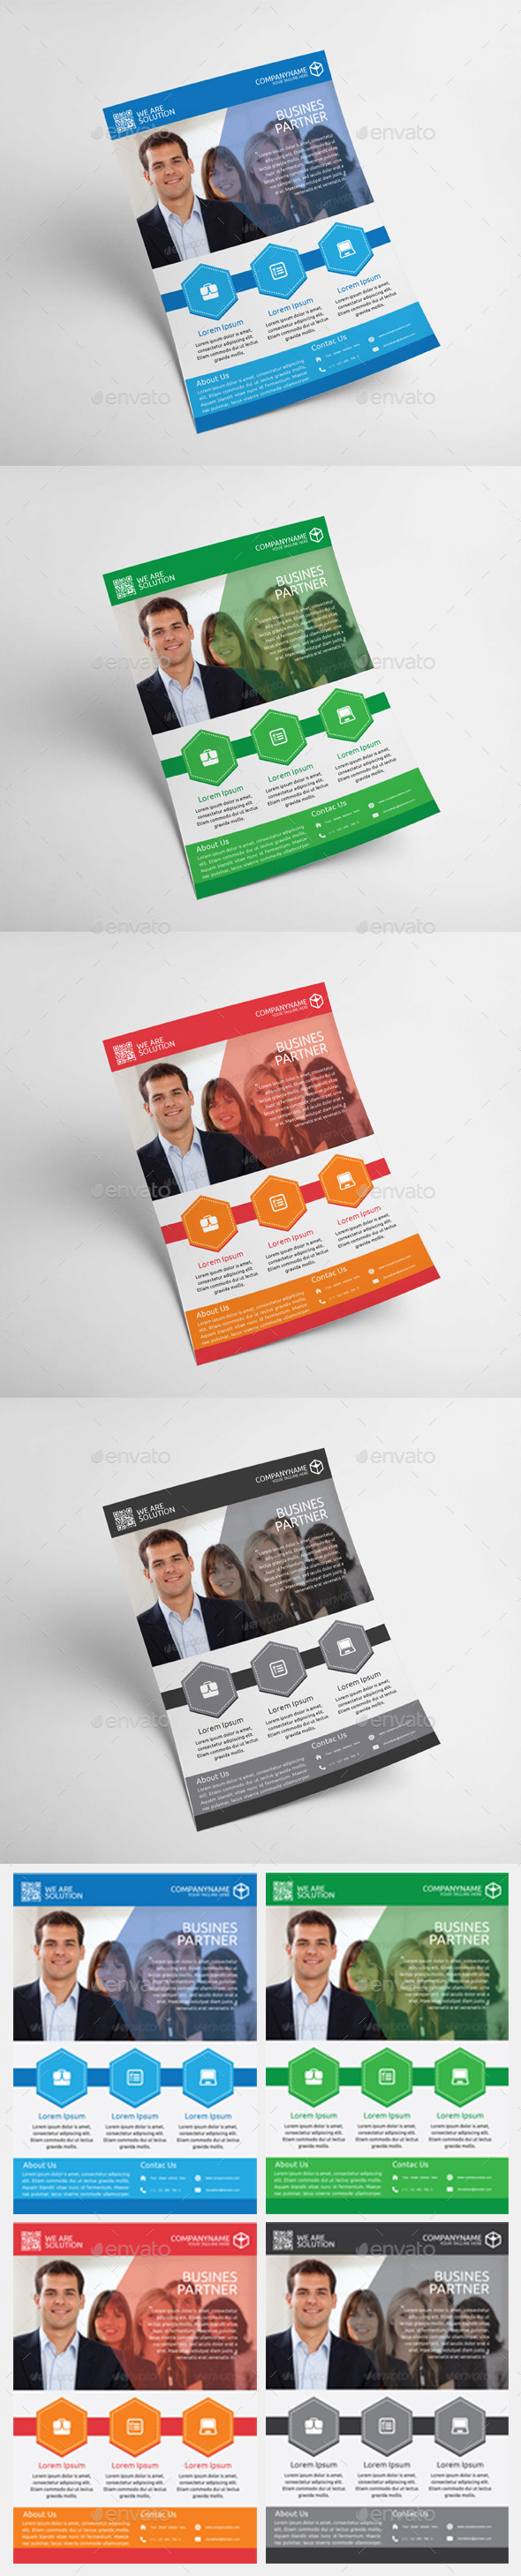 GraphicRiver Modern Corporate Business Flyer Vol 1 11170334